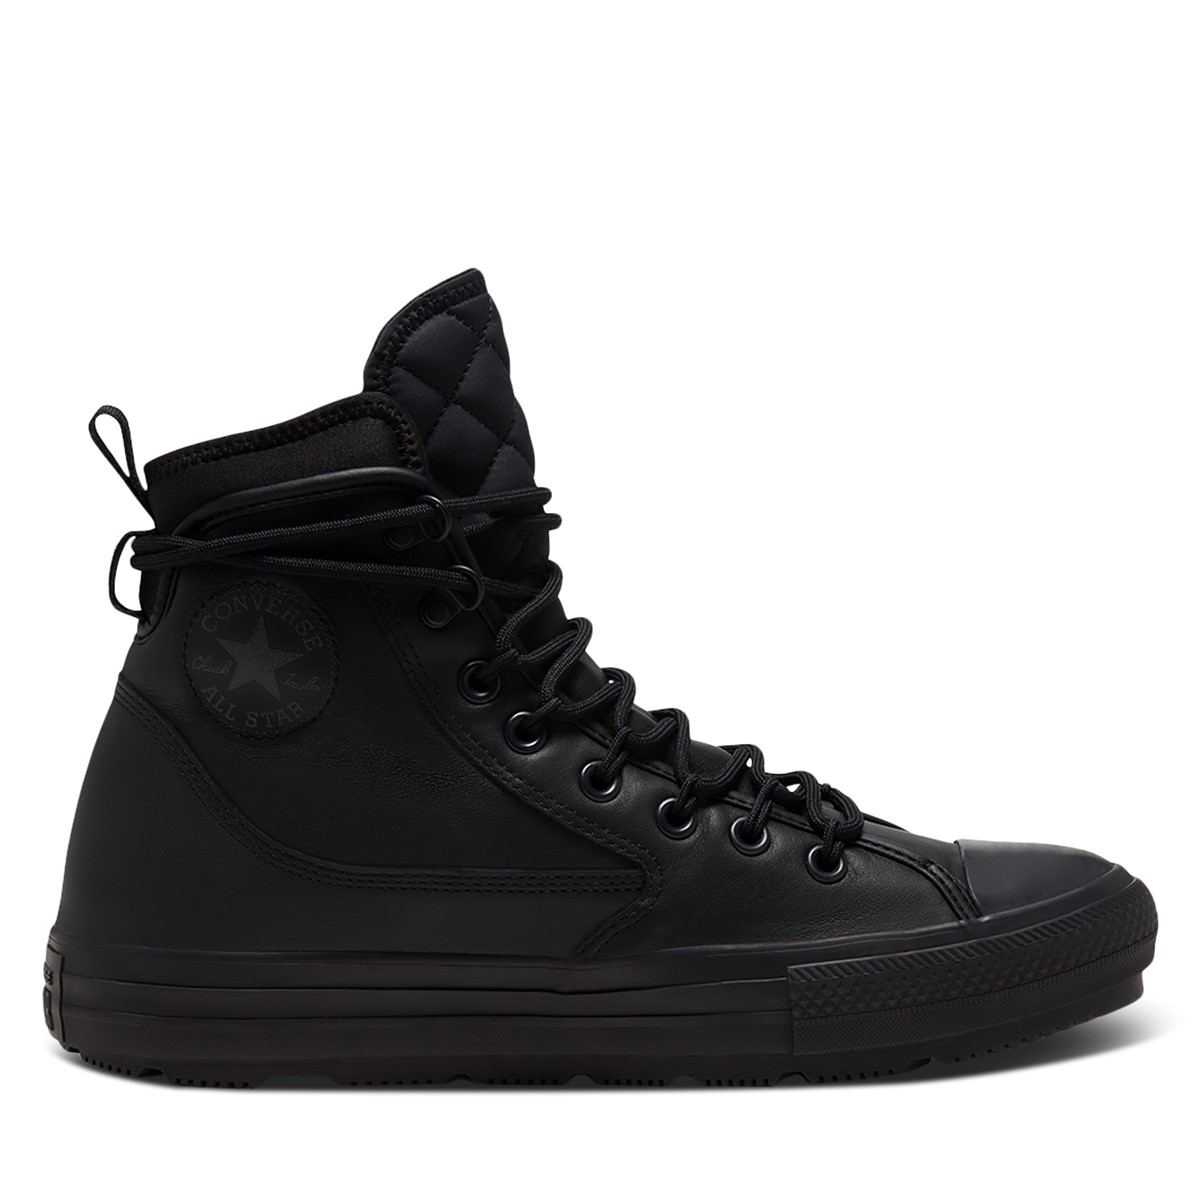 Men's Utility All Terrain Chuck Taylor All Star Boots in Black